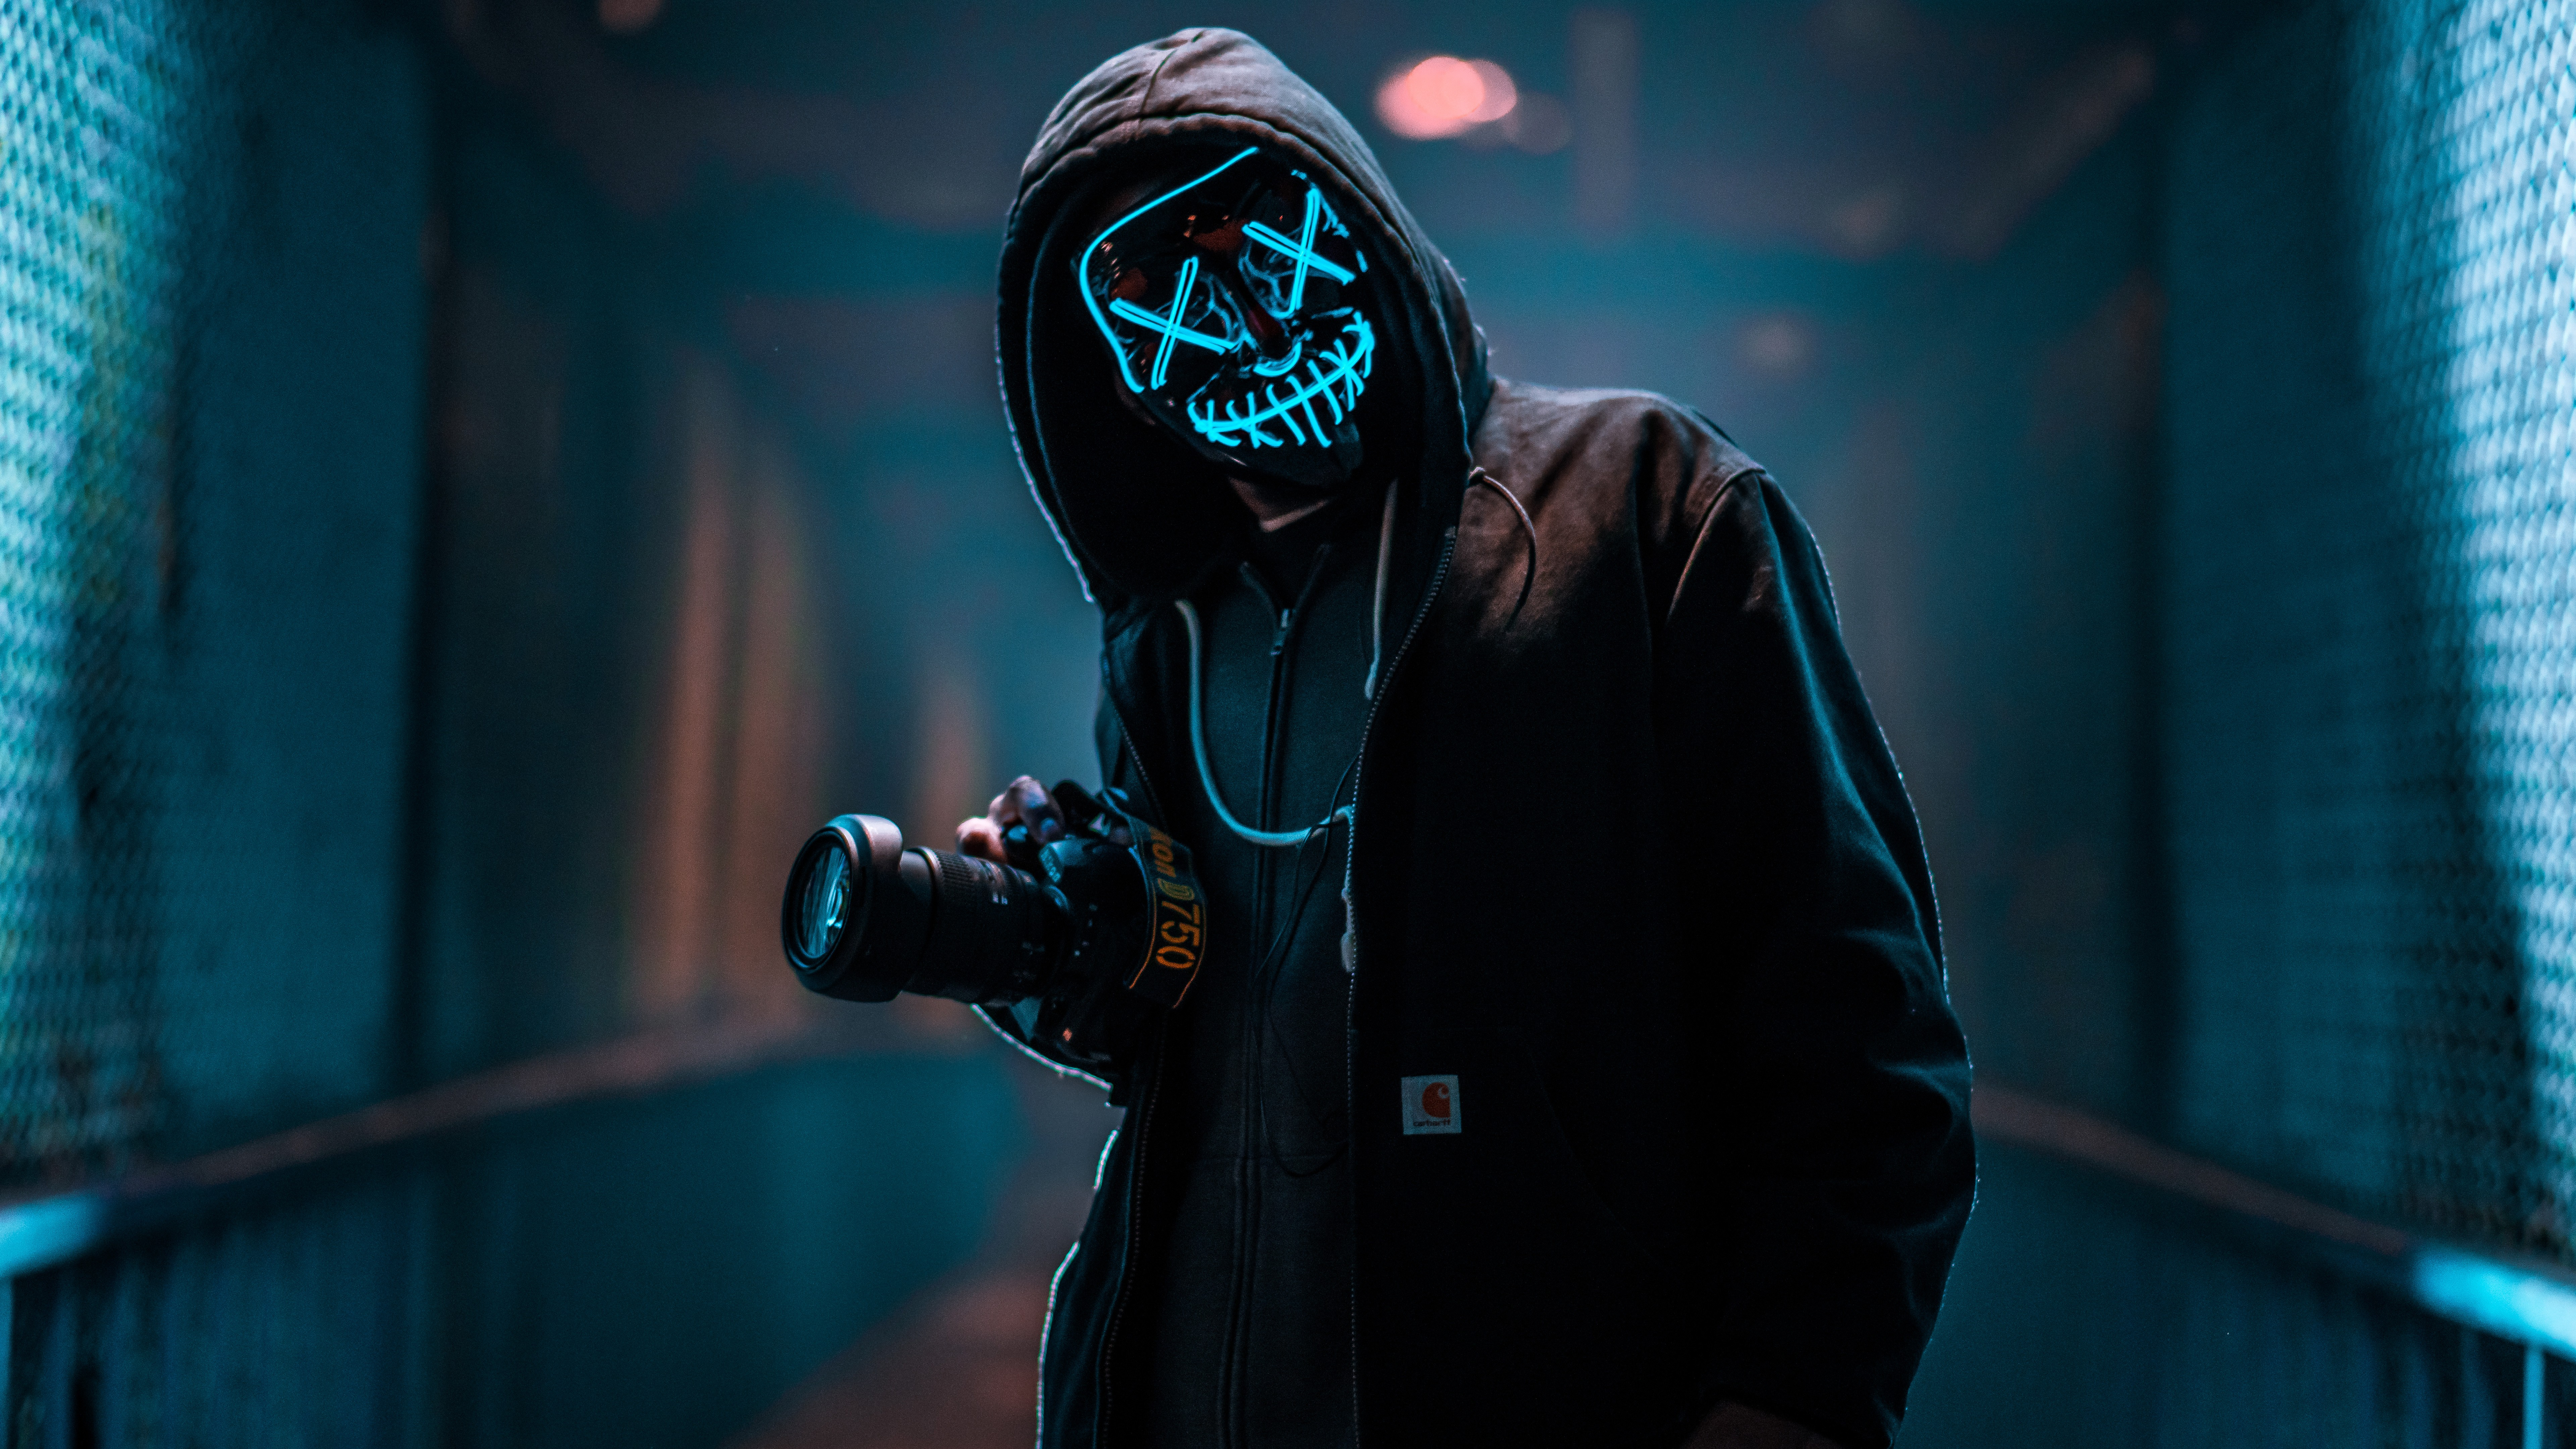 mask guy with dslr 1574938471 - Mask Guy With Dslr -